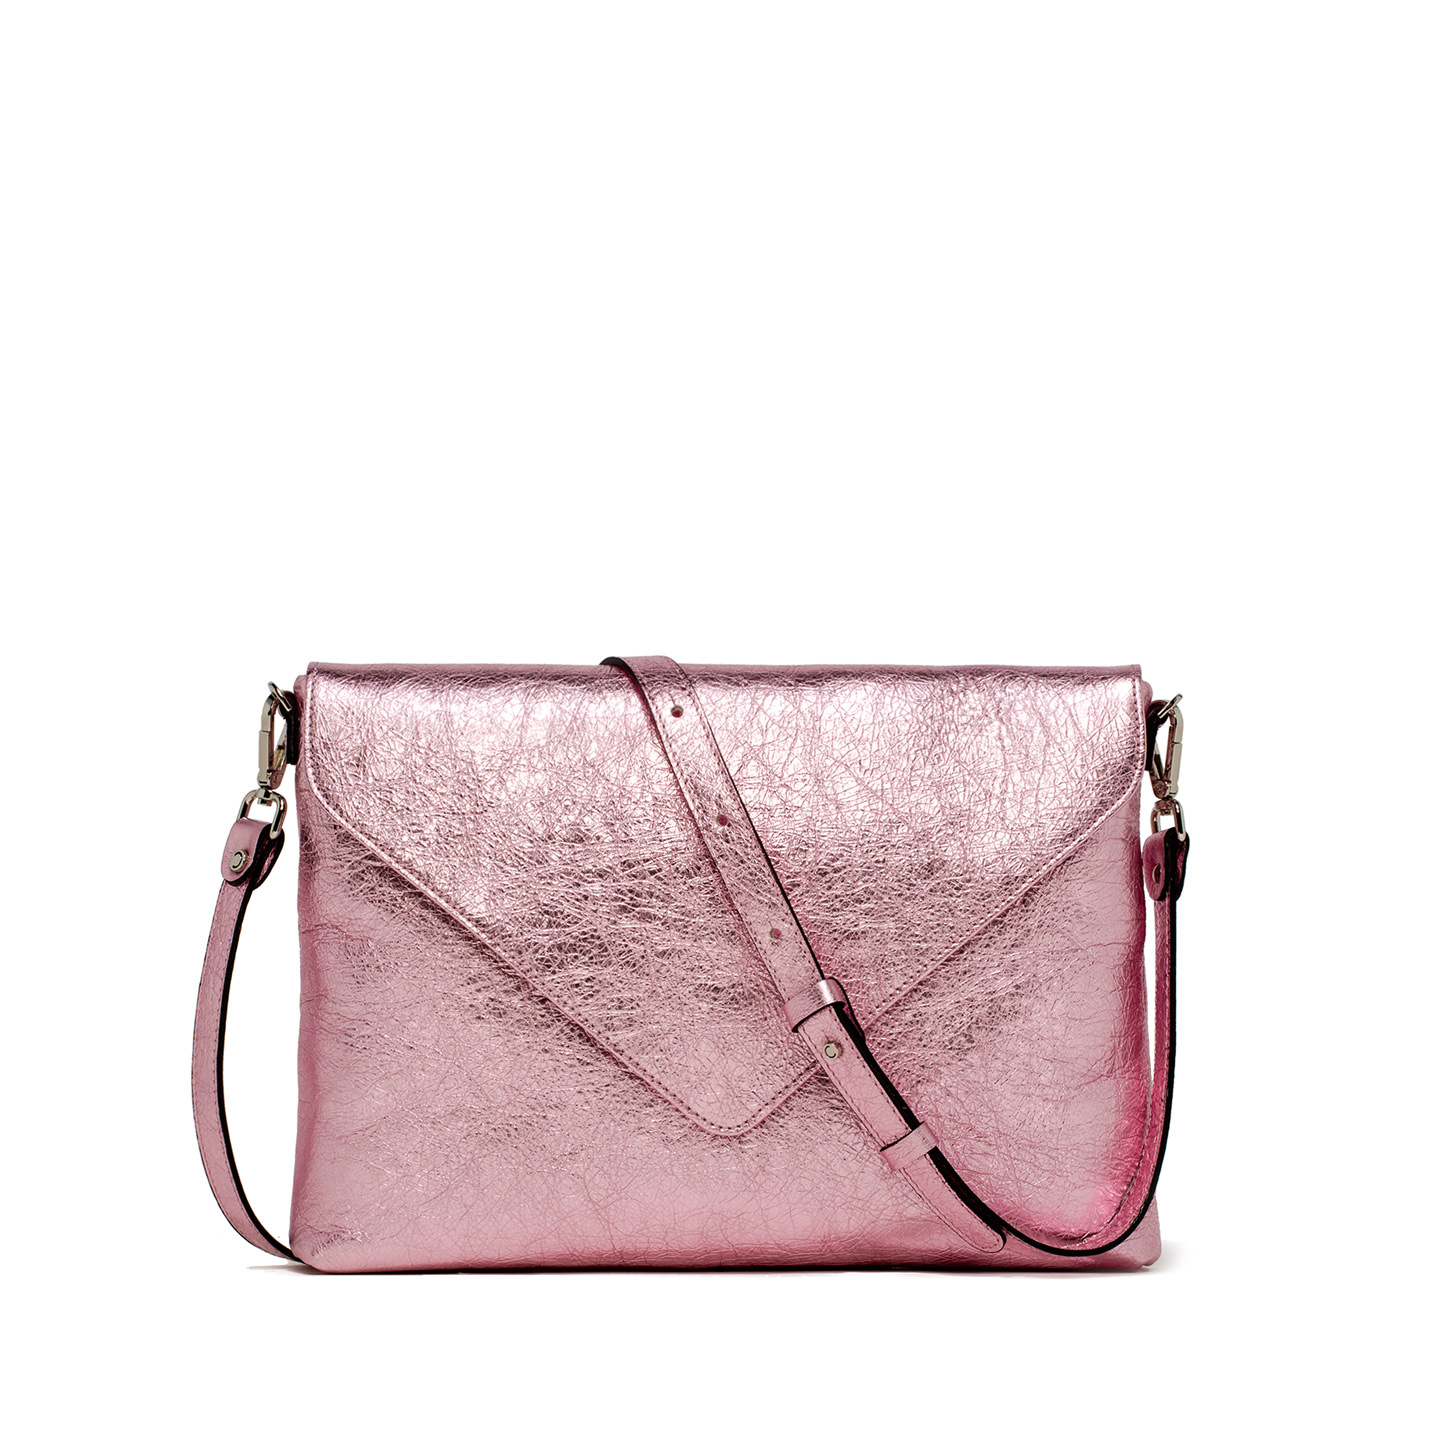 GIANNI CHIARINI: VICTORIA LARGE PINK CLUTCH BAG